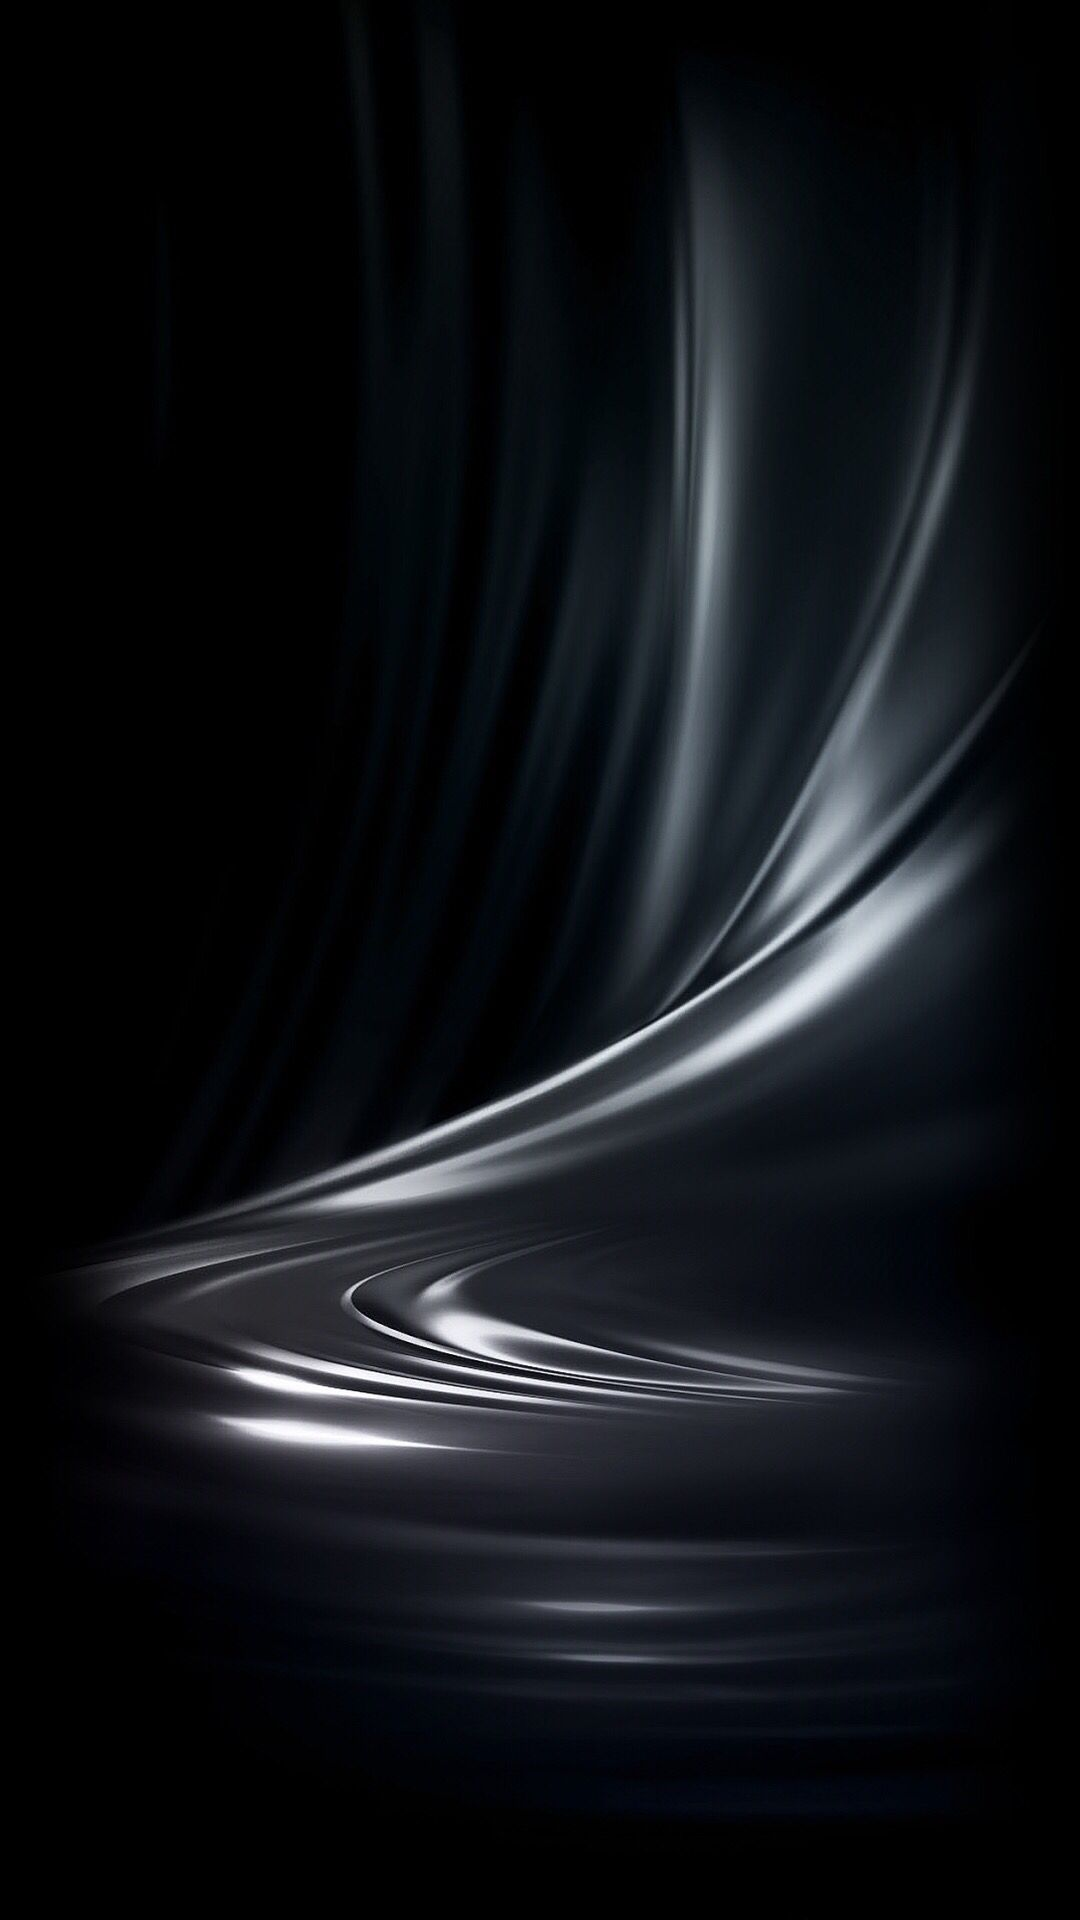 Free Ringtones Wallpapers And Backgrounds For Your Cell Phone Zedge Android Wallpaper Black Background Wallpaper Android Wallpaper Black